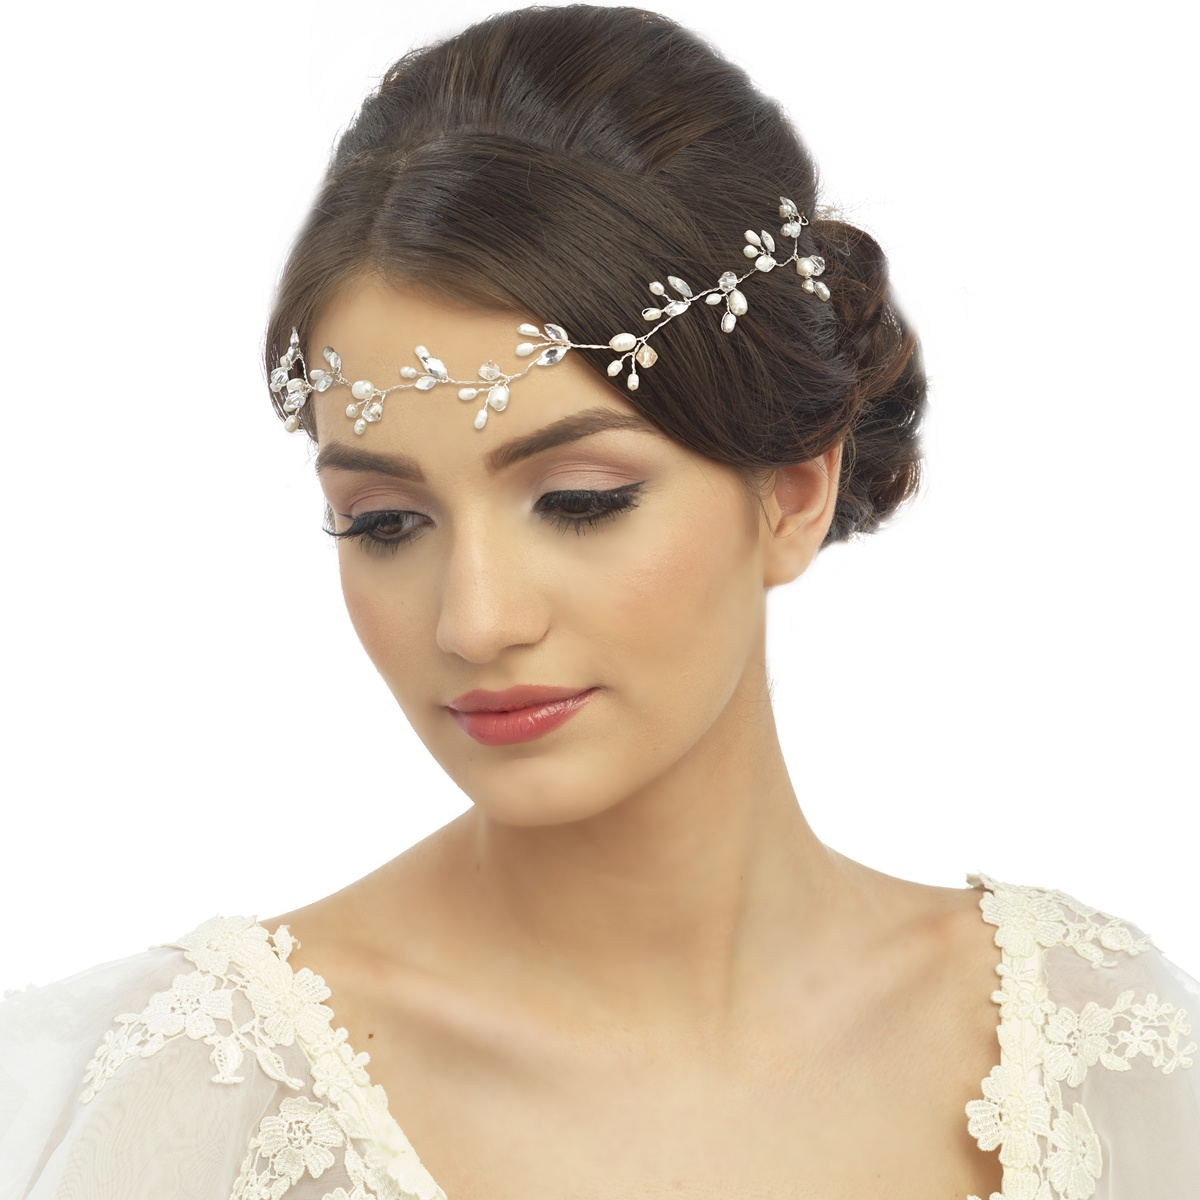 Bridal Hair: Bridal Hair Vines Become The Best Selling Hair Accessory